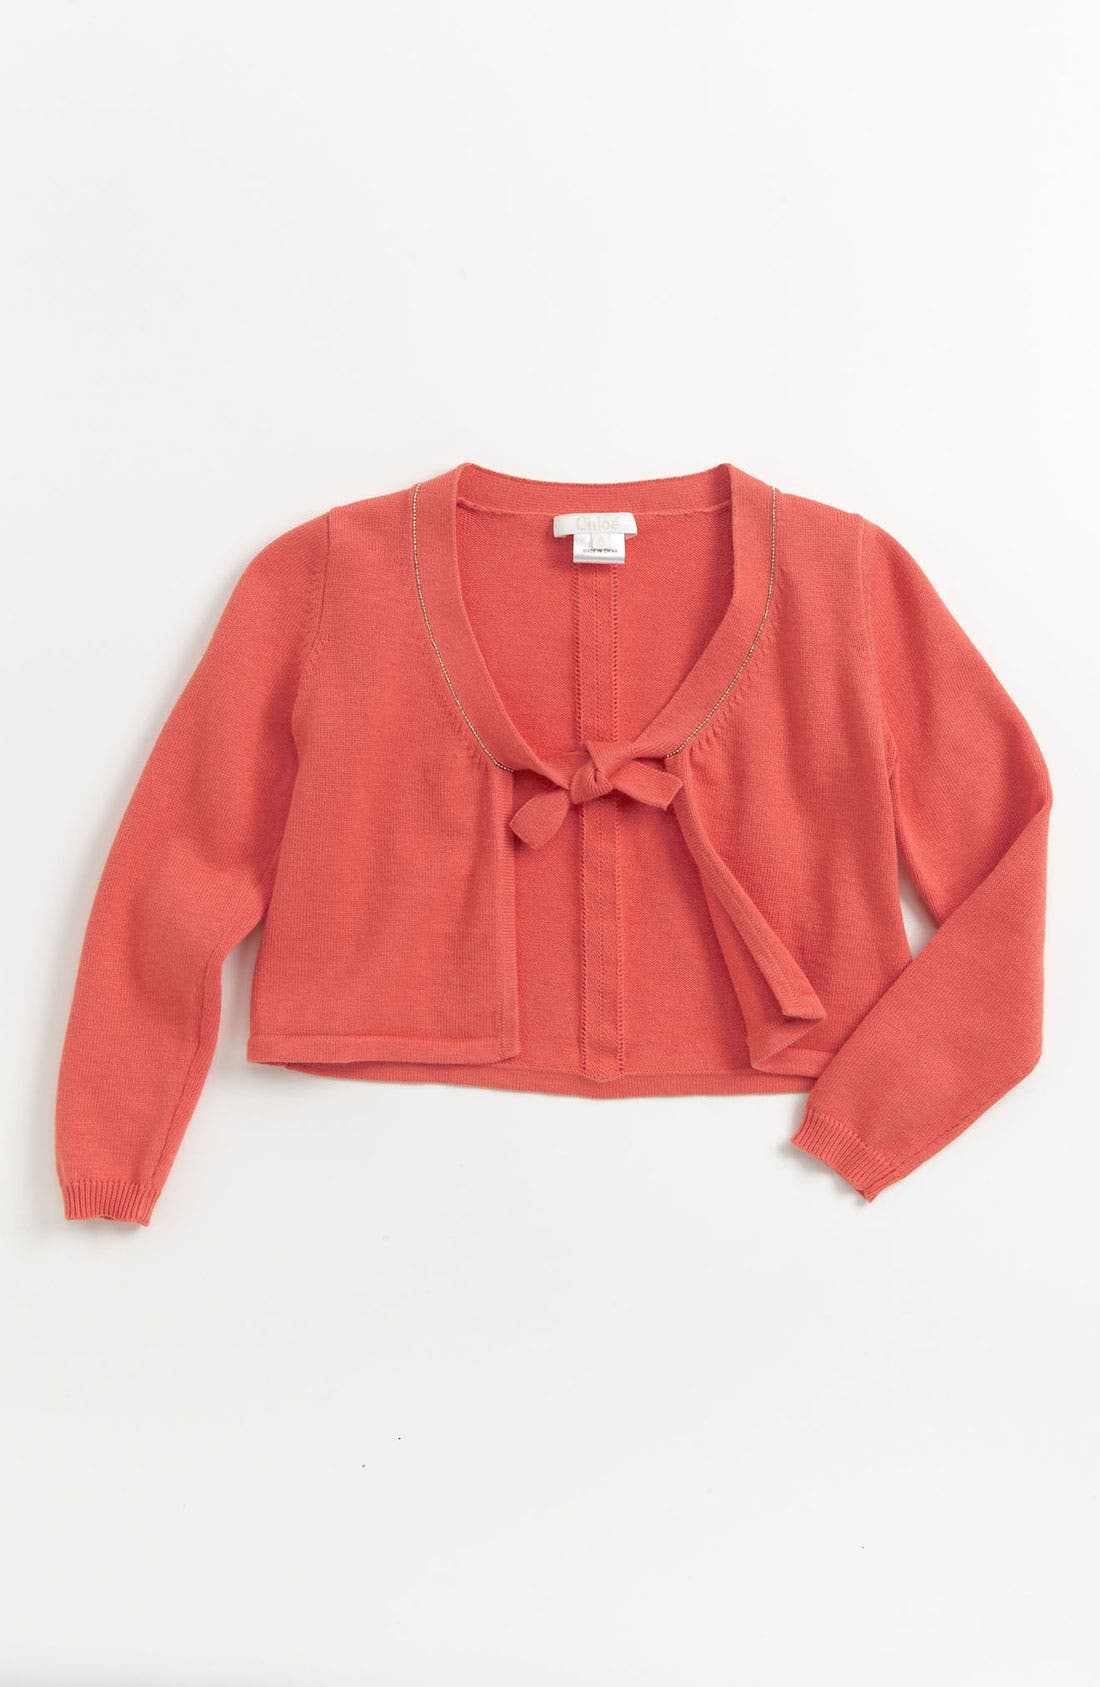 Alternate Image 1 Selected - Chloé Knit Bolero (Toddler, Little Girls & Big Girls)